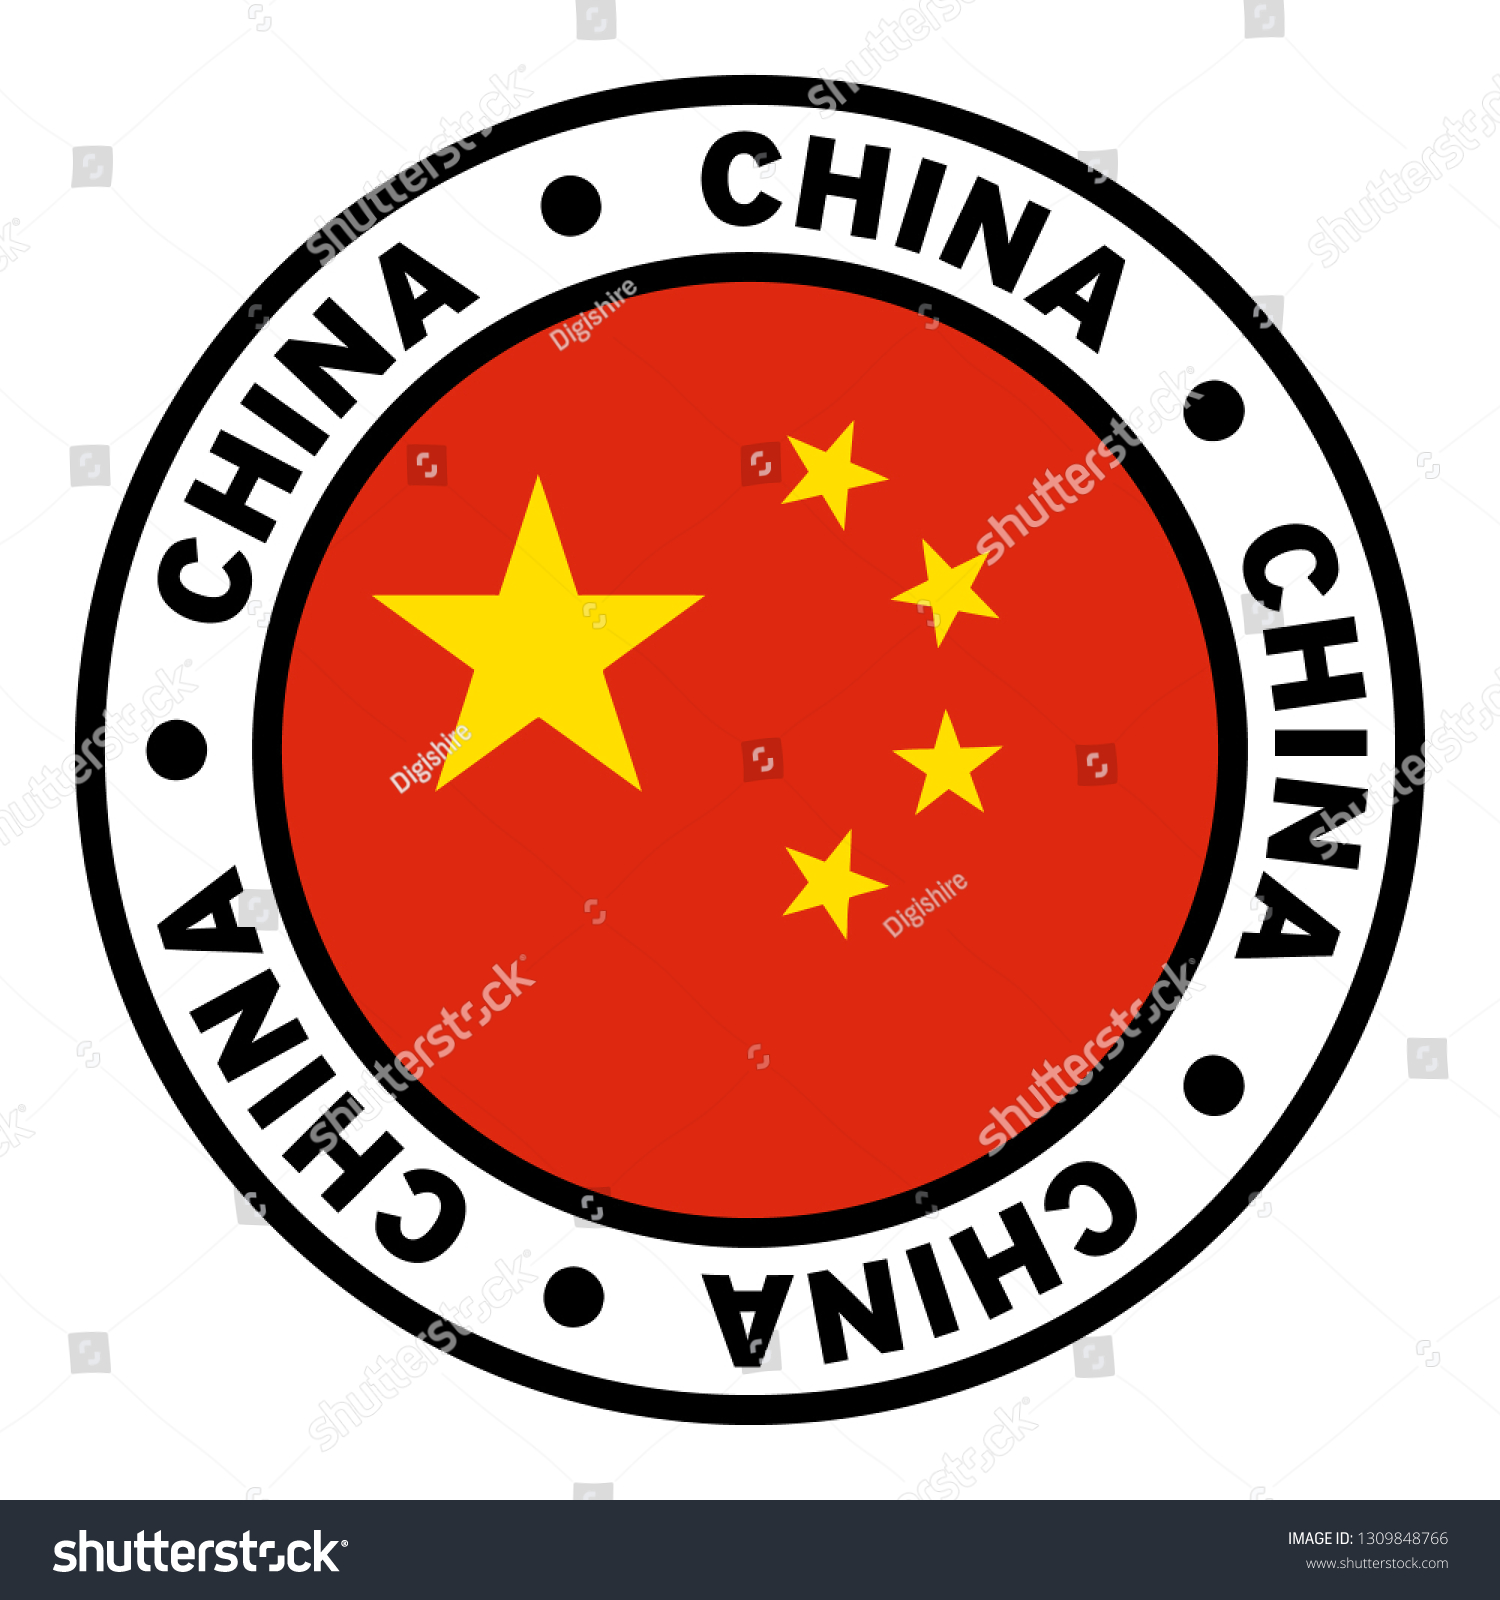 Round China Flag Clipart Stock Vector Royalty Free 1309848766